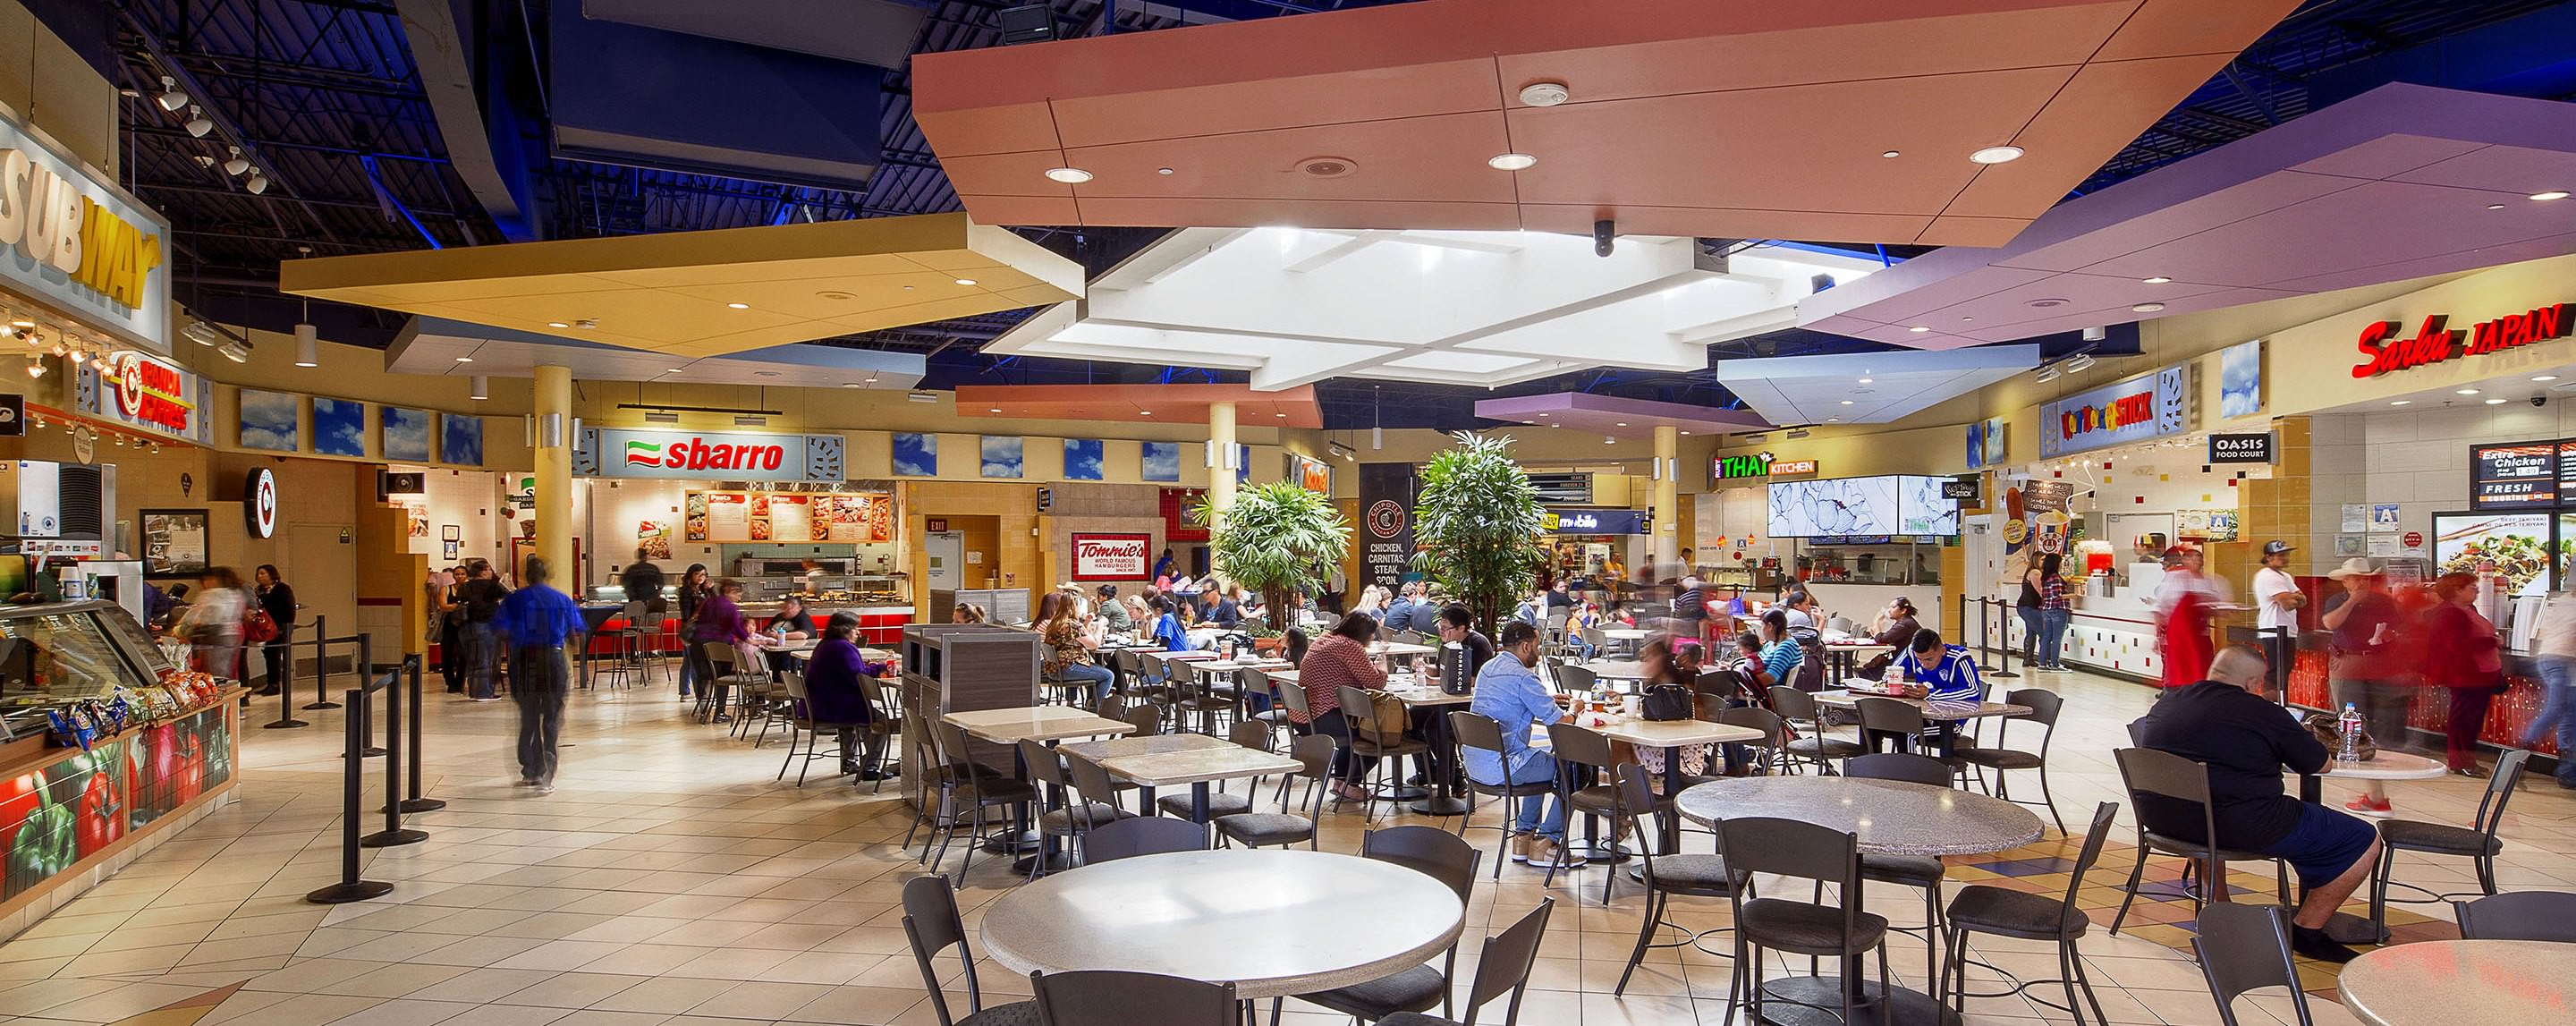 Valley Plaza Mall Bakersfield Food Court